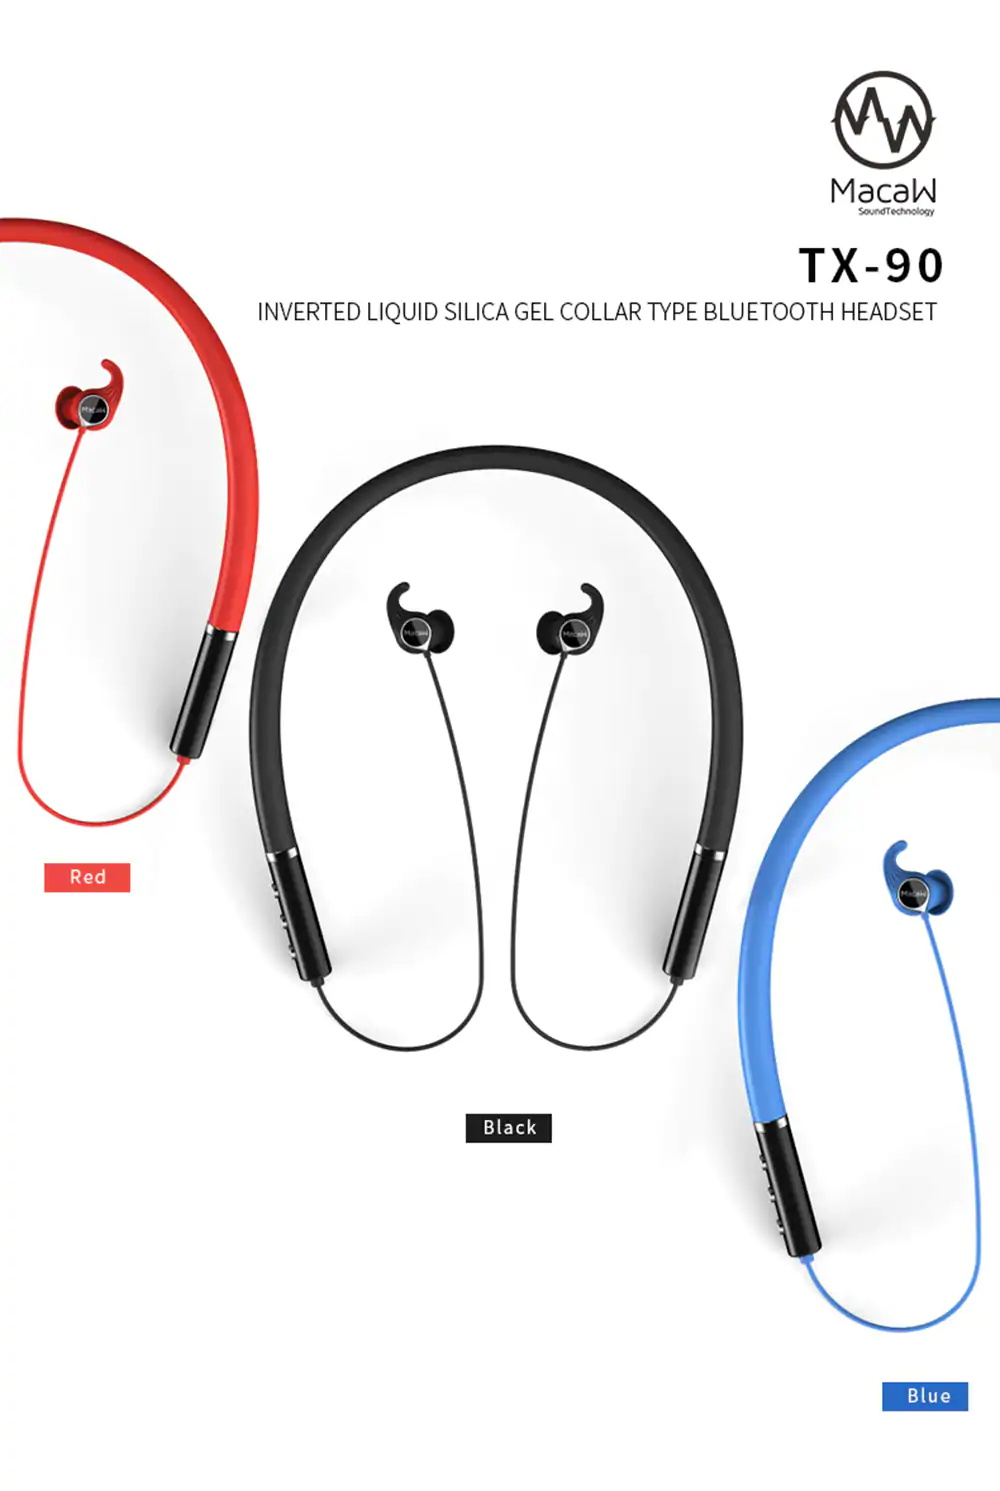 macaw tx-90 earbuds